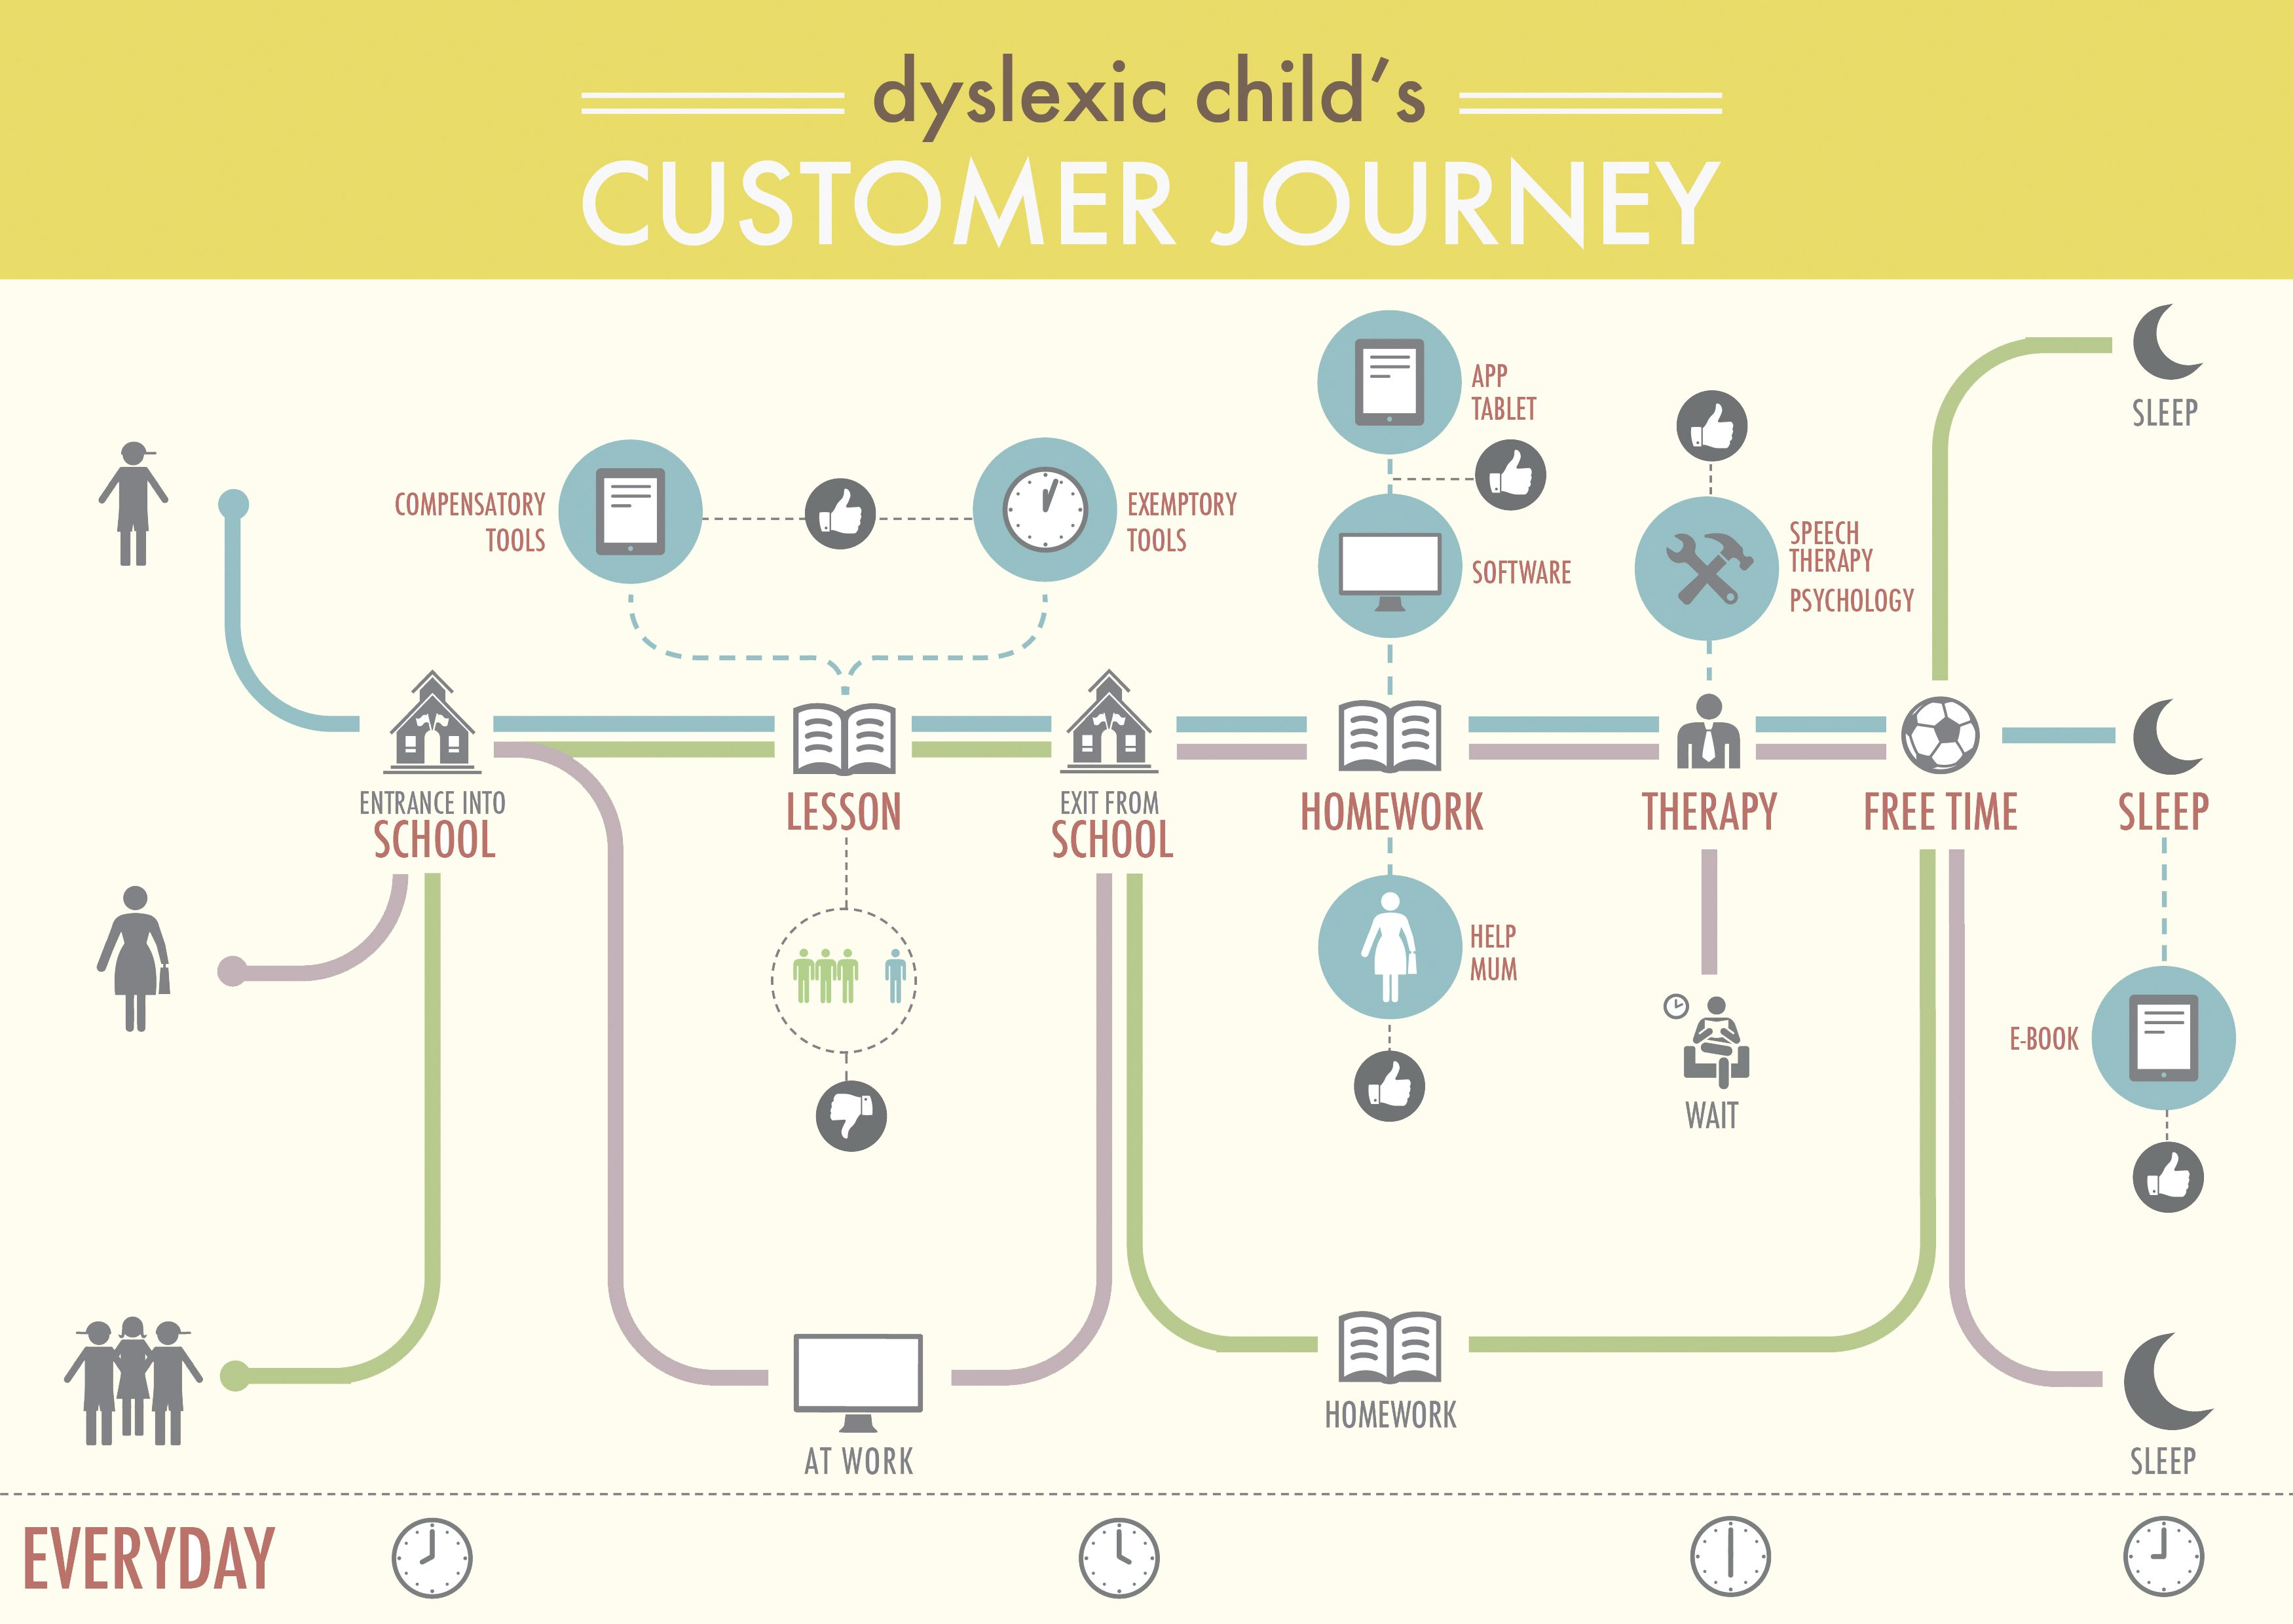 Customer Journey Mapyzing The Daily Life Of A Dyslexic Child With The Personas Involved